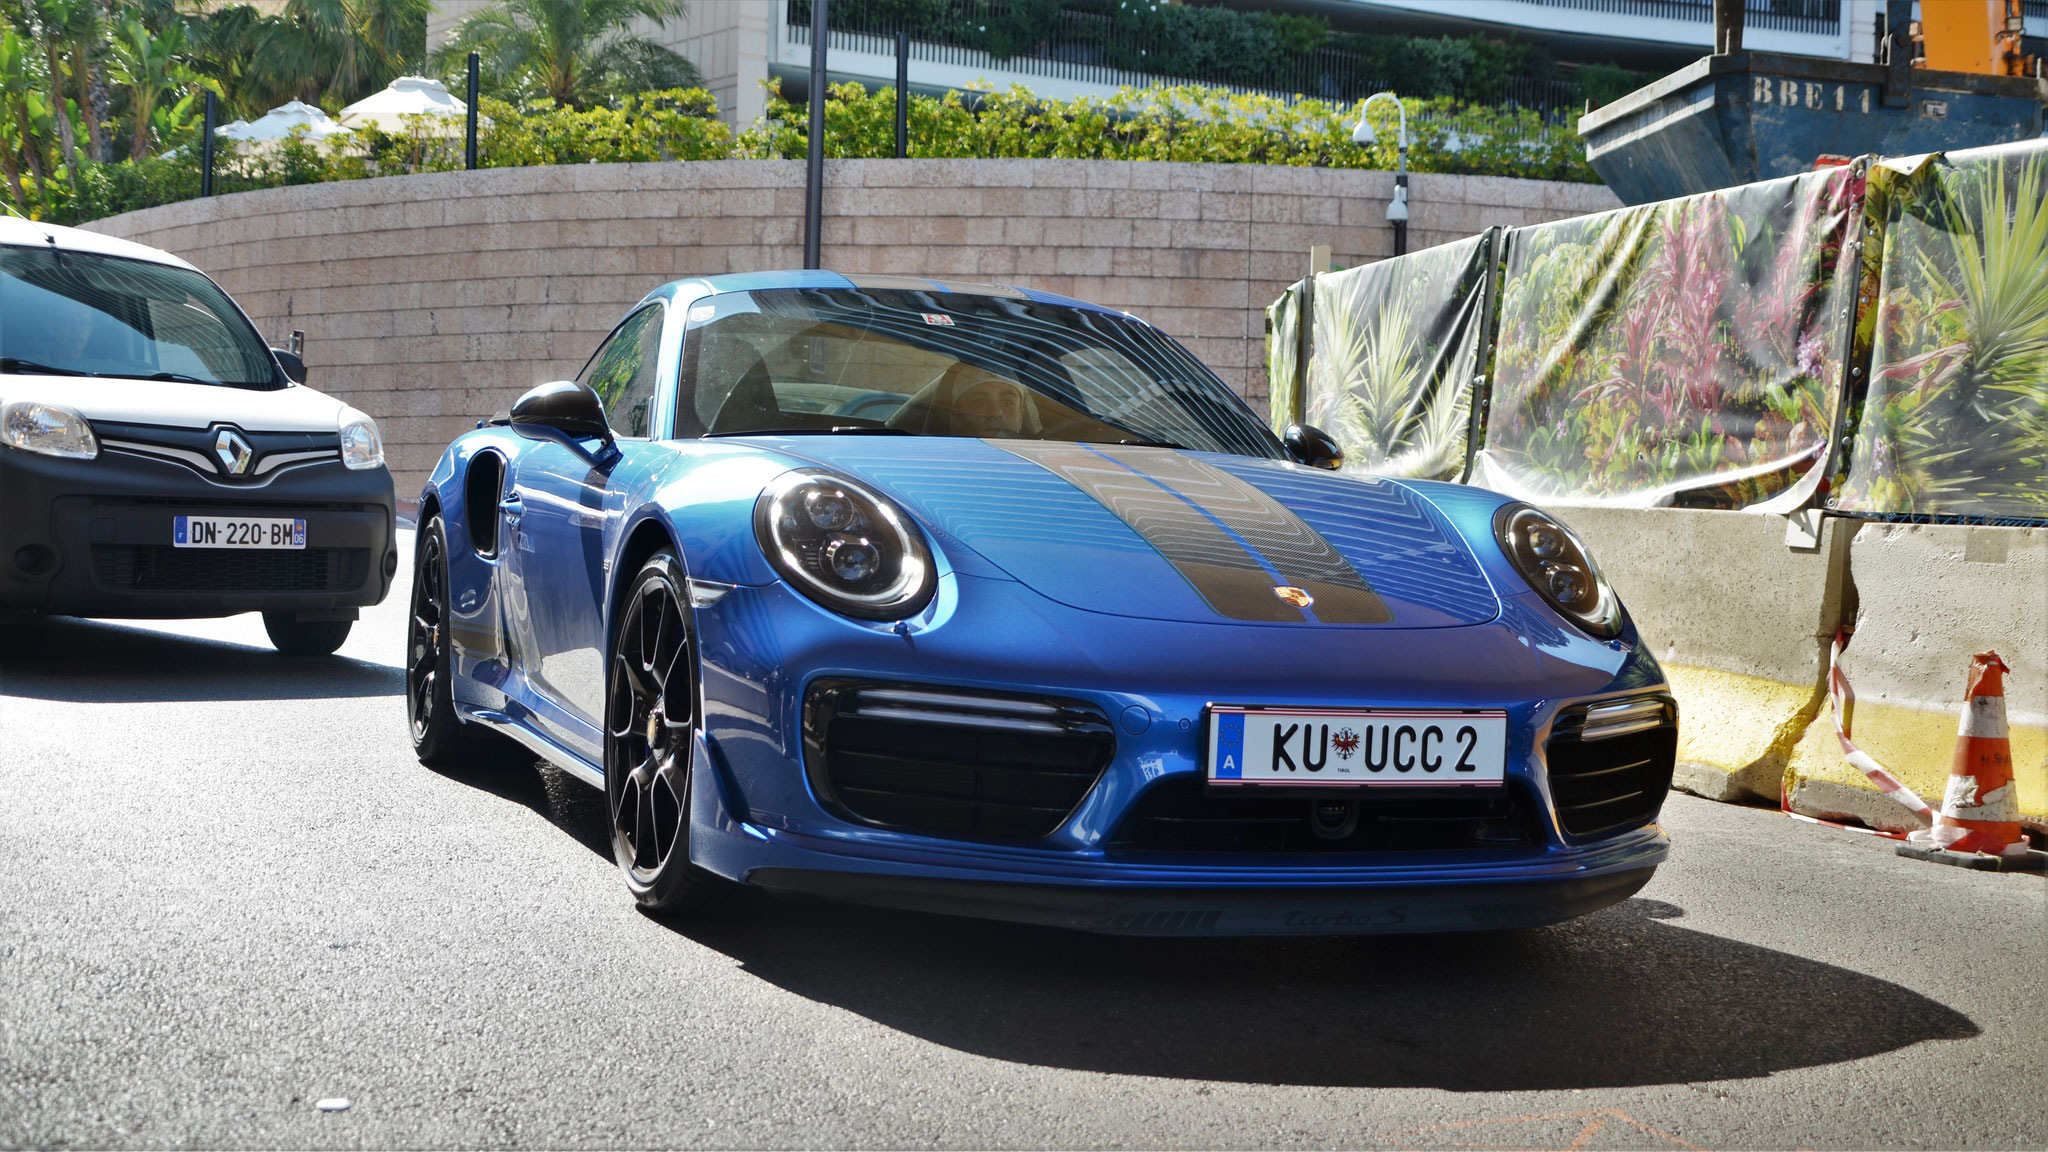 Porsche 911 Turbo S Excluive Series - KU-UCC-2 (AUT)